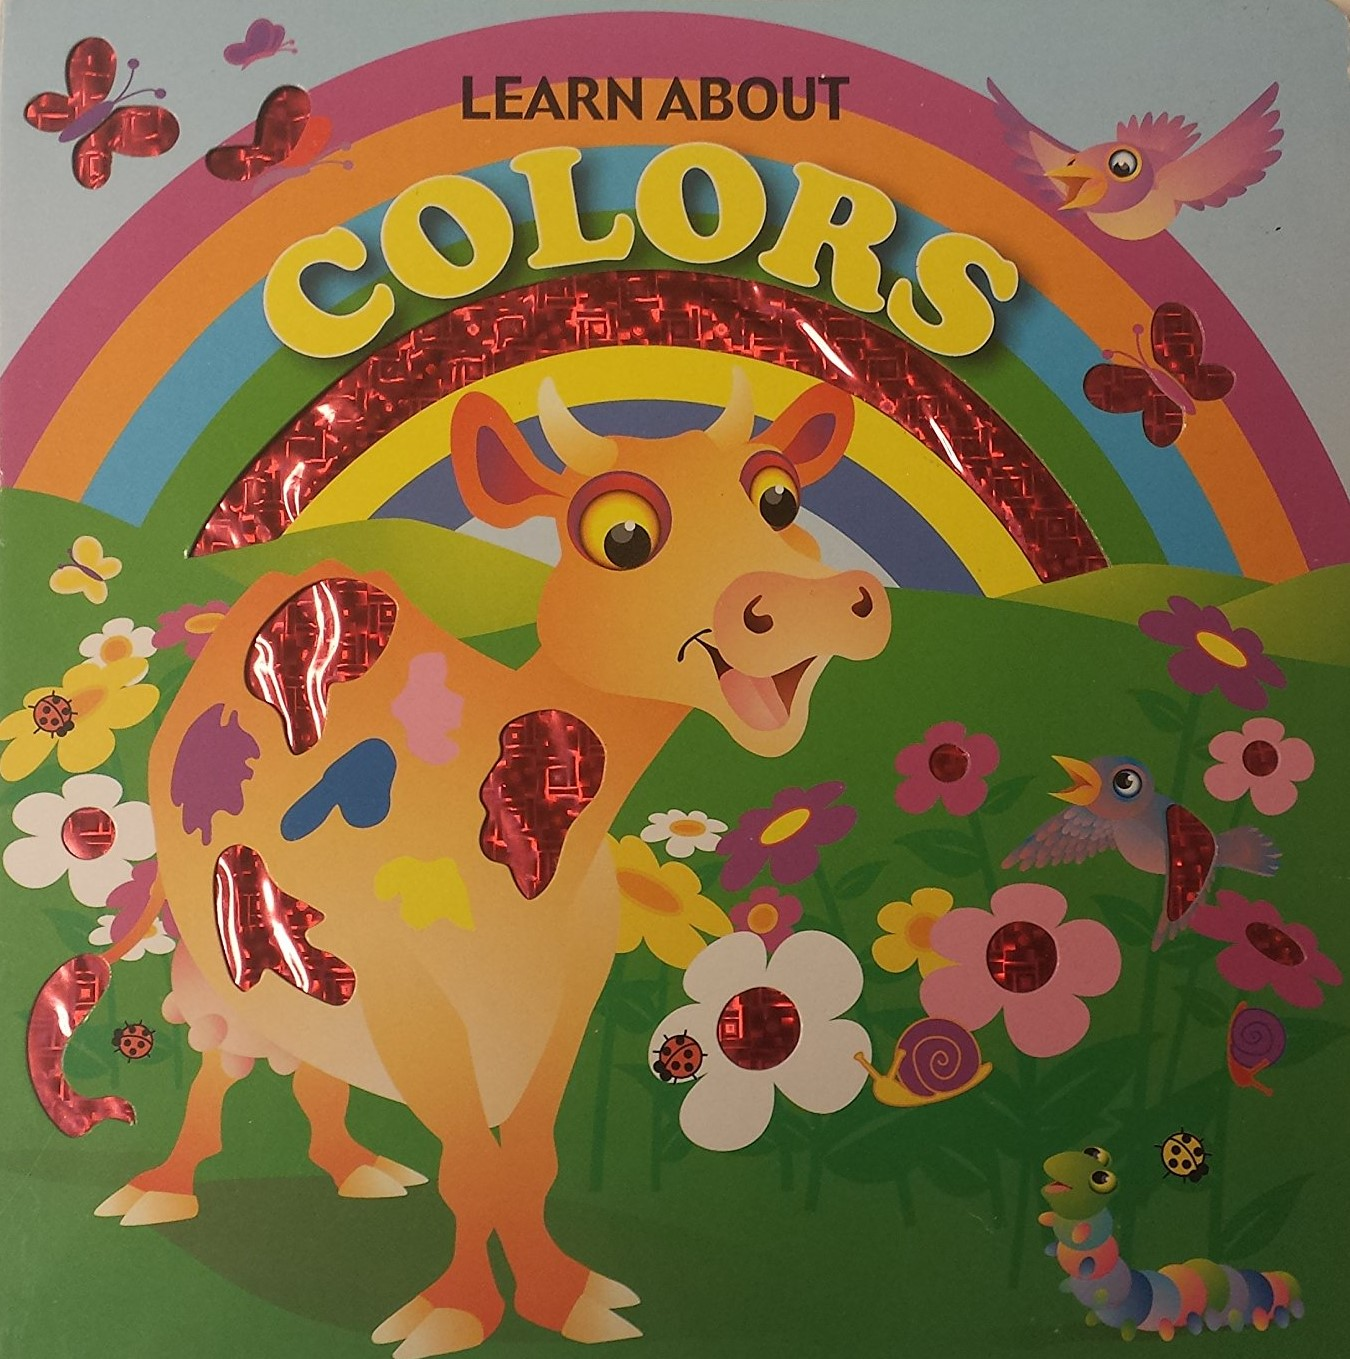 LEARN ABOUT COLOURS